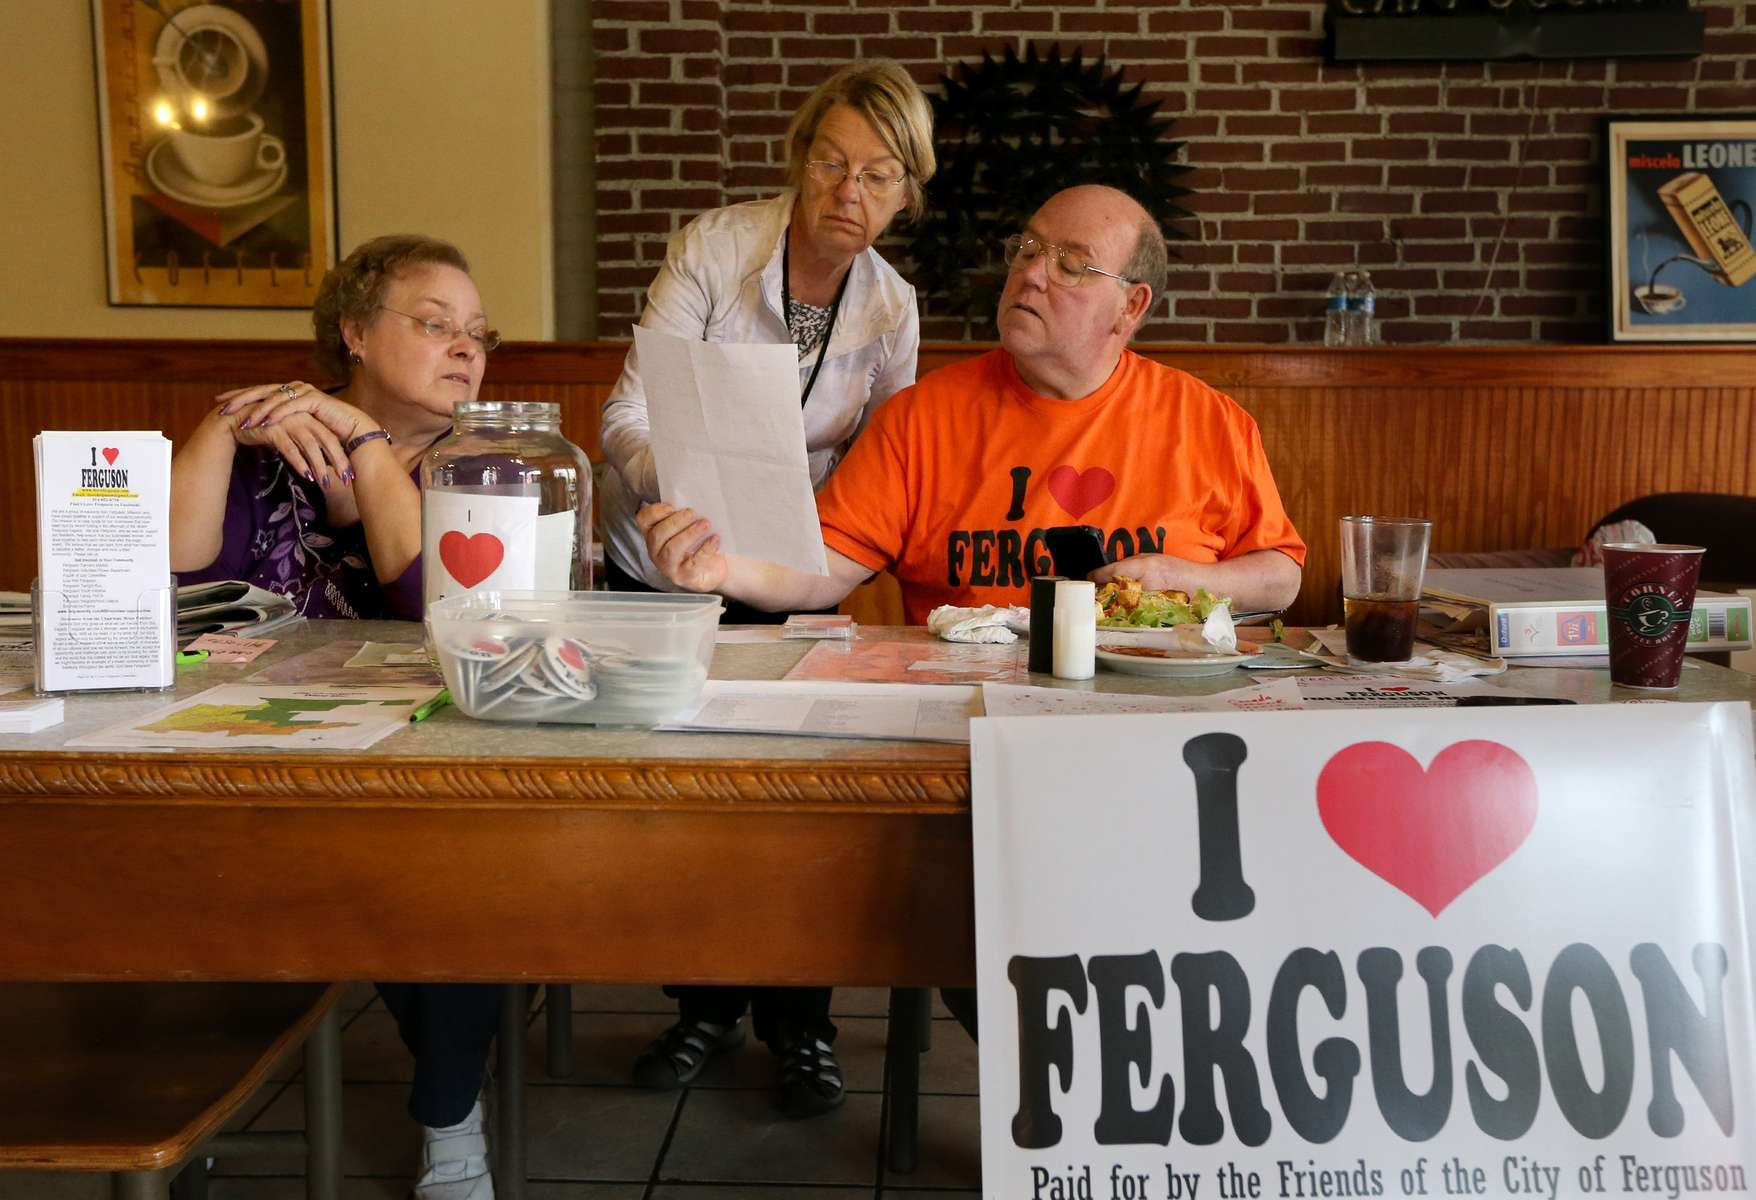 Elaine Wirt (left), Peggy Faul, and Brian Fletcher go over some paper work about the I ❤ FERGUSON committee at Corner Coffee House in Ferguson on Wednesday, Sept. 17, 2014. The committee that is selling the I ❤ FERGUSON shirts, buttons and yard signs recently received a letter from a man claiming the shirts violate his trademark on I ❤ FERGUSON.Photo By David Carson, dcarson@post-dispatch.com